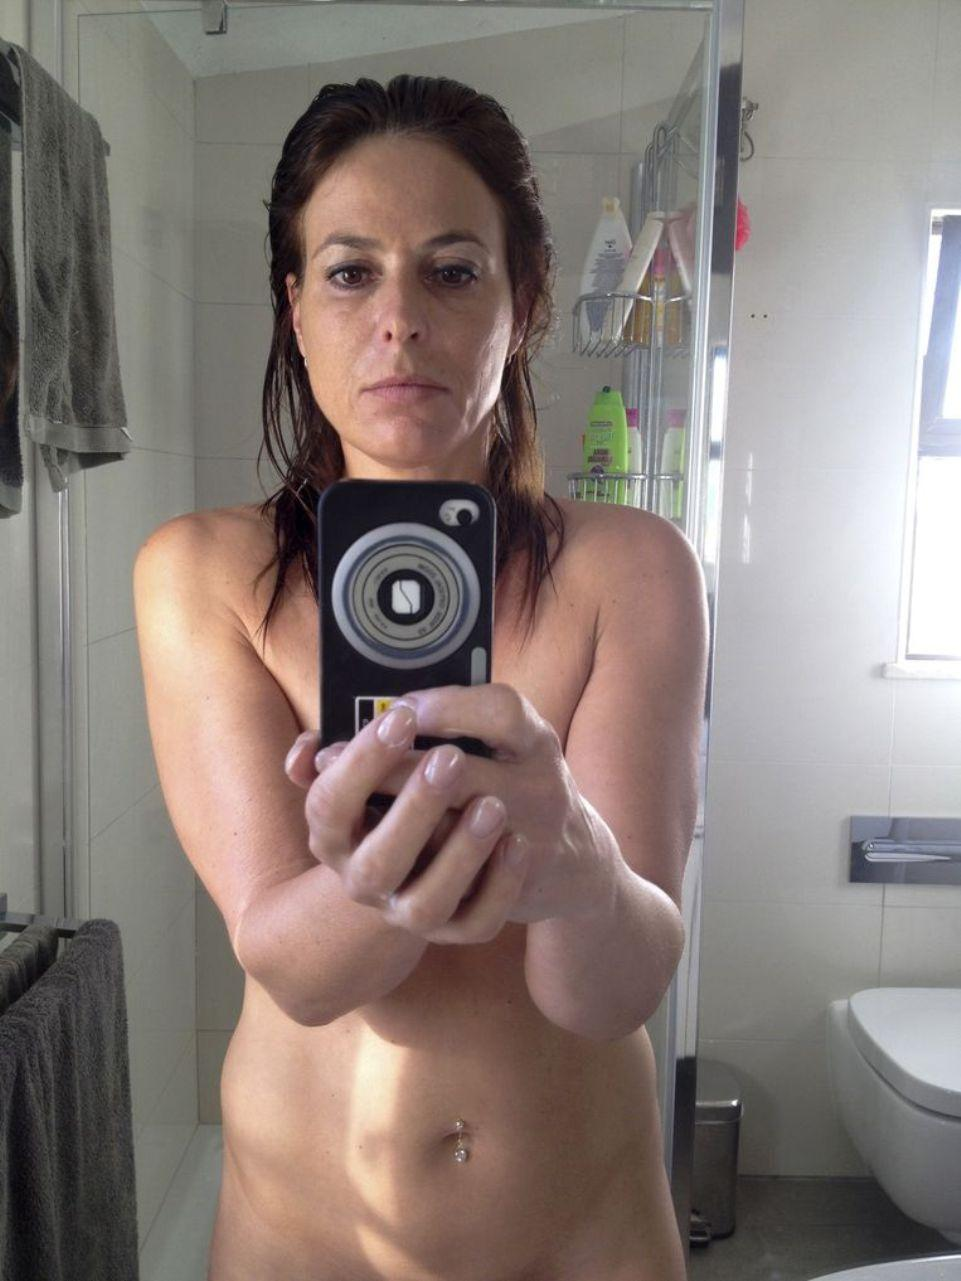 Brunette mature takes mirror selfies while stripping naked in bathroom. Naked wife make selfie of her natural body in bathroom mirror